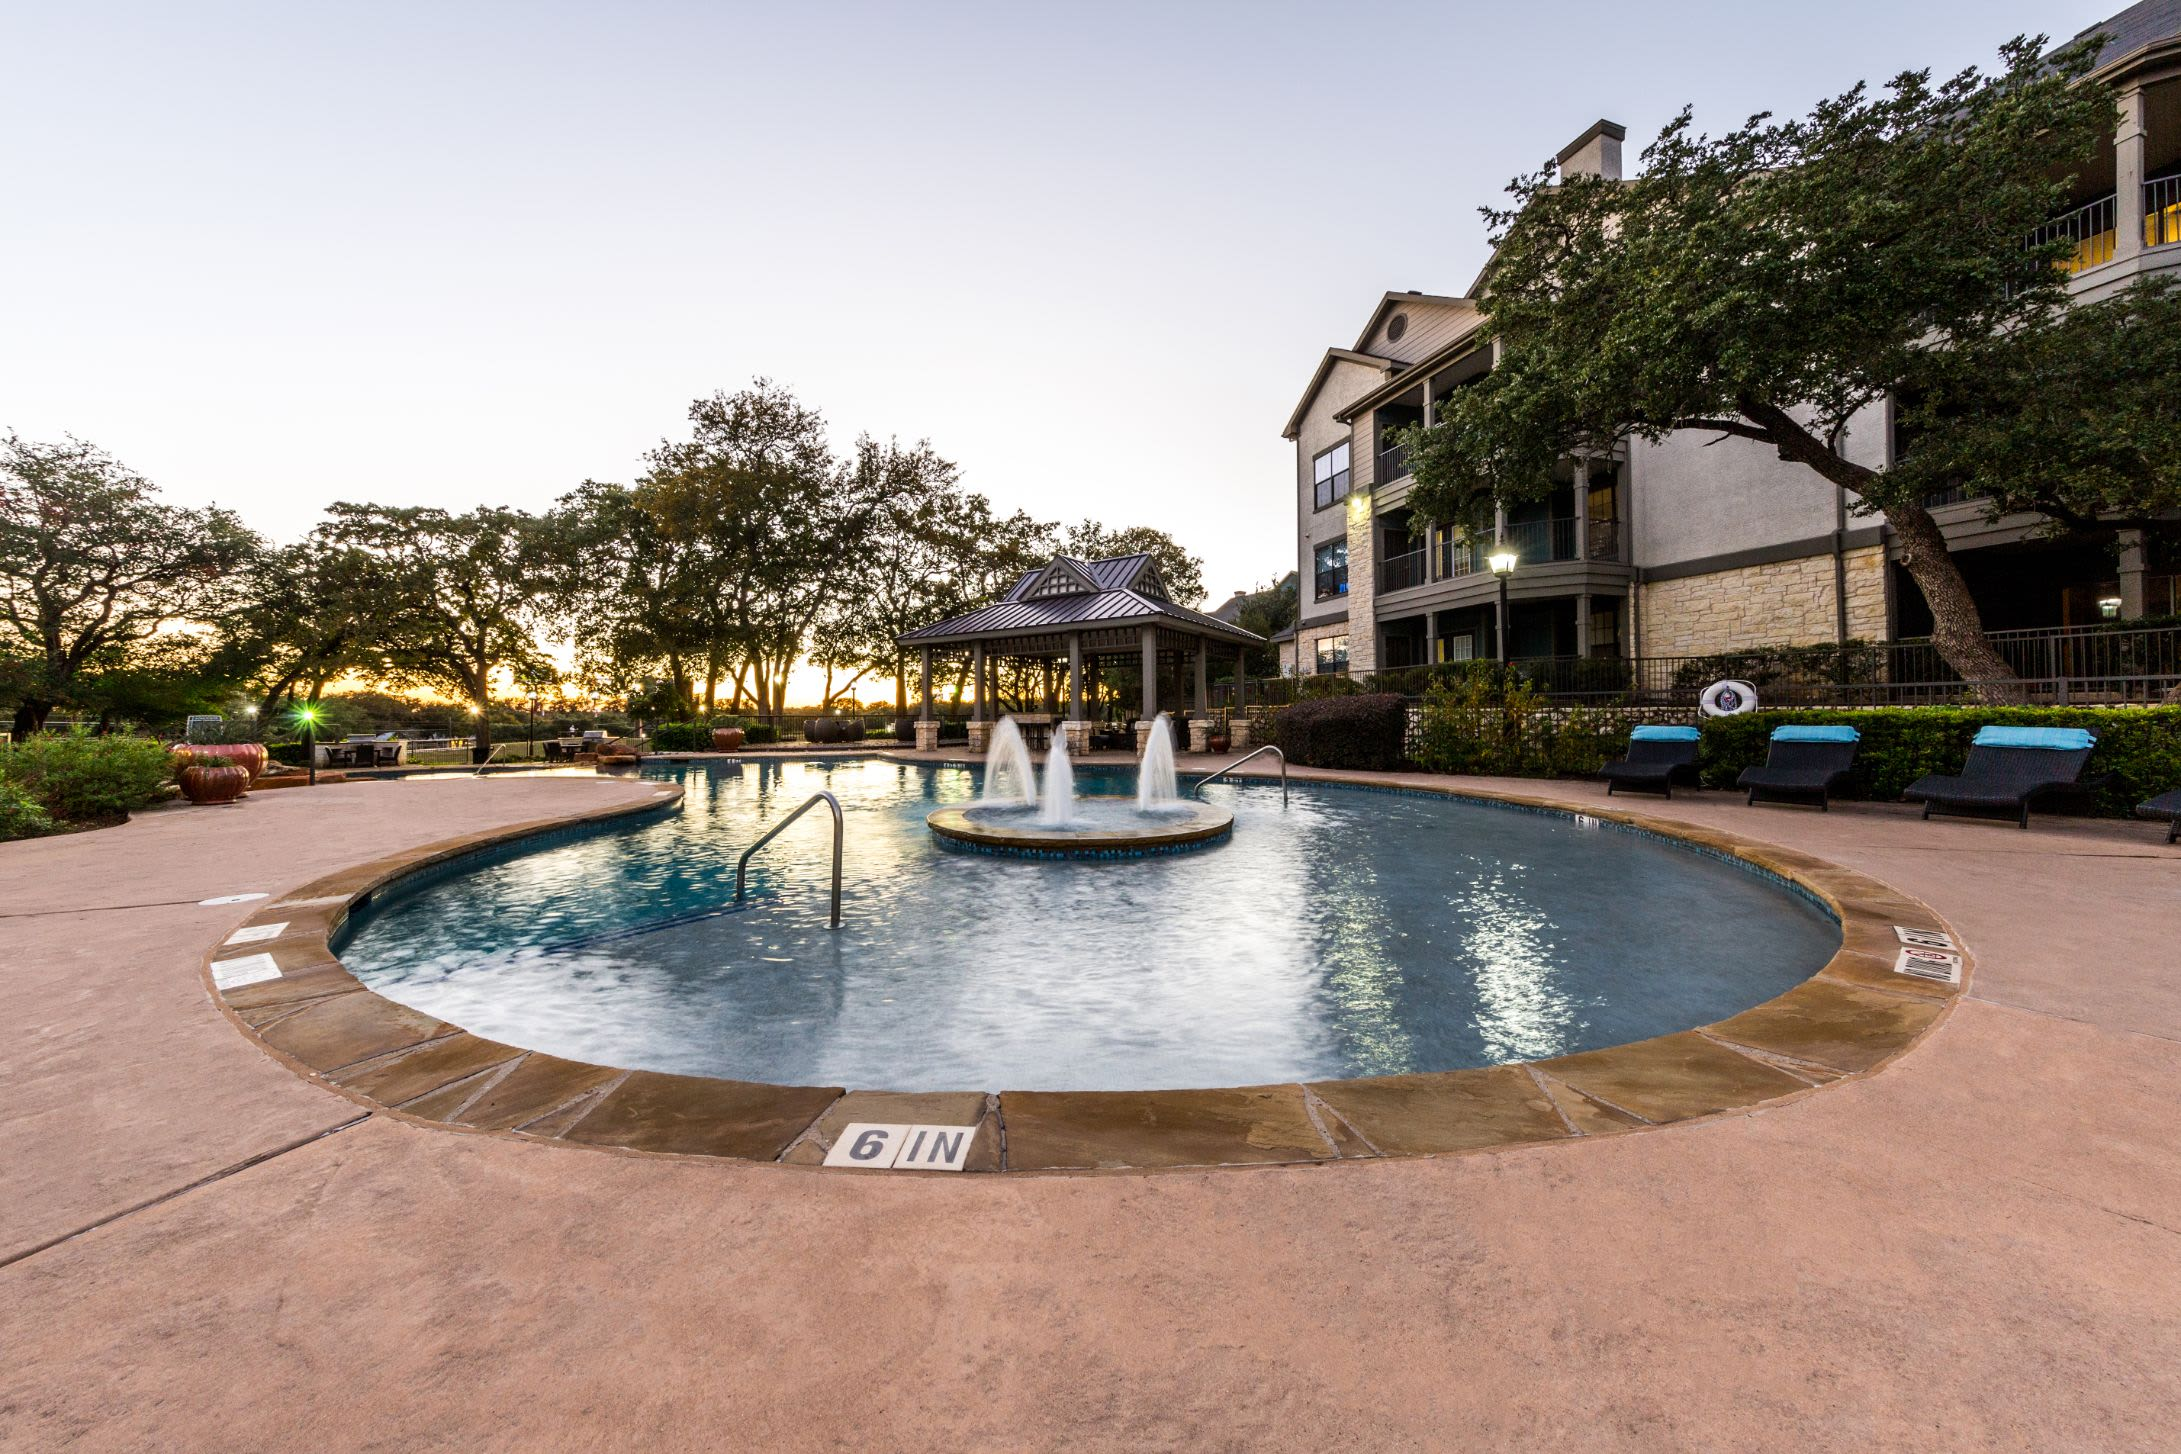 Swimming pool with a fountain in the center at The Marquis at Brushy Creek in Austin, Texas